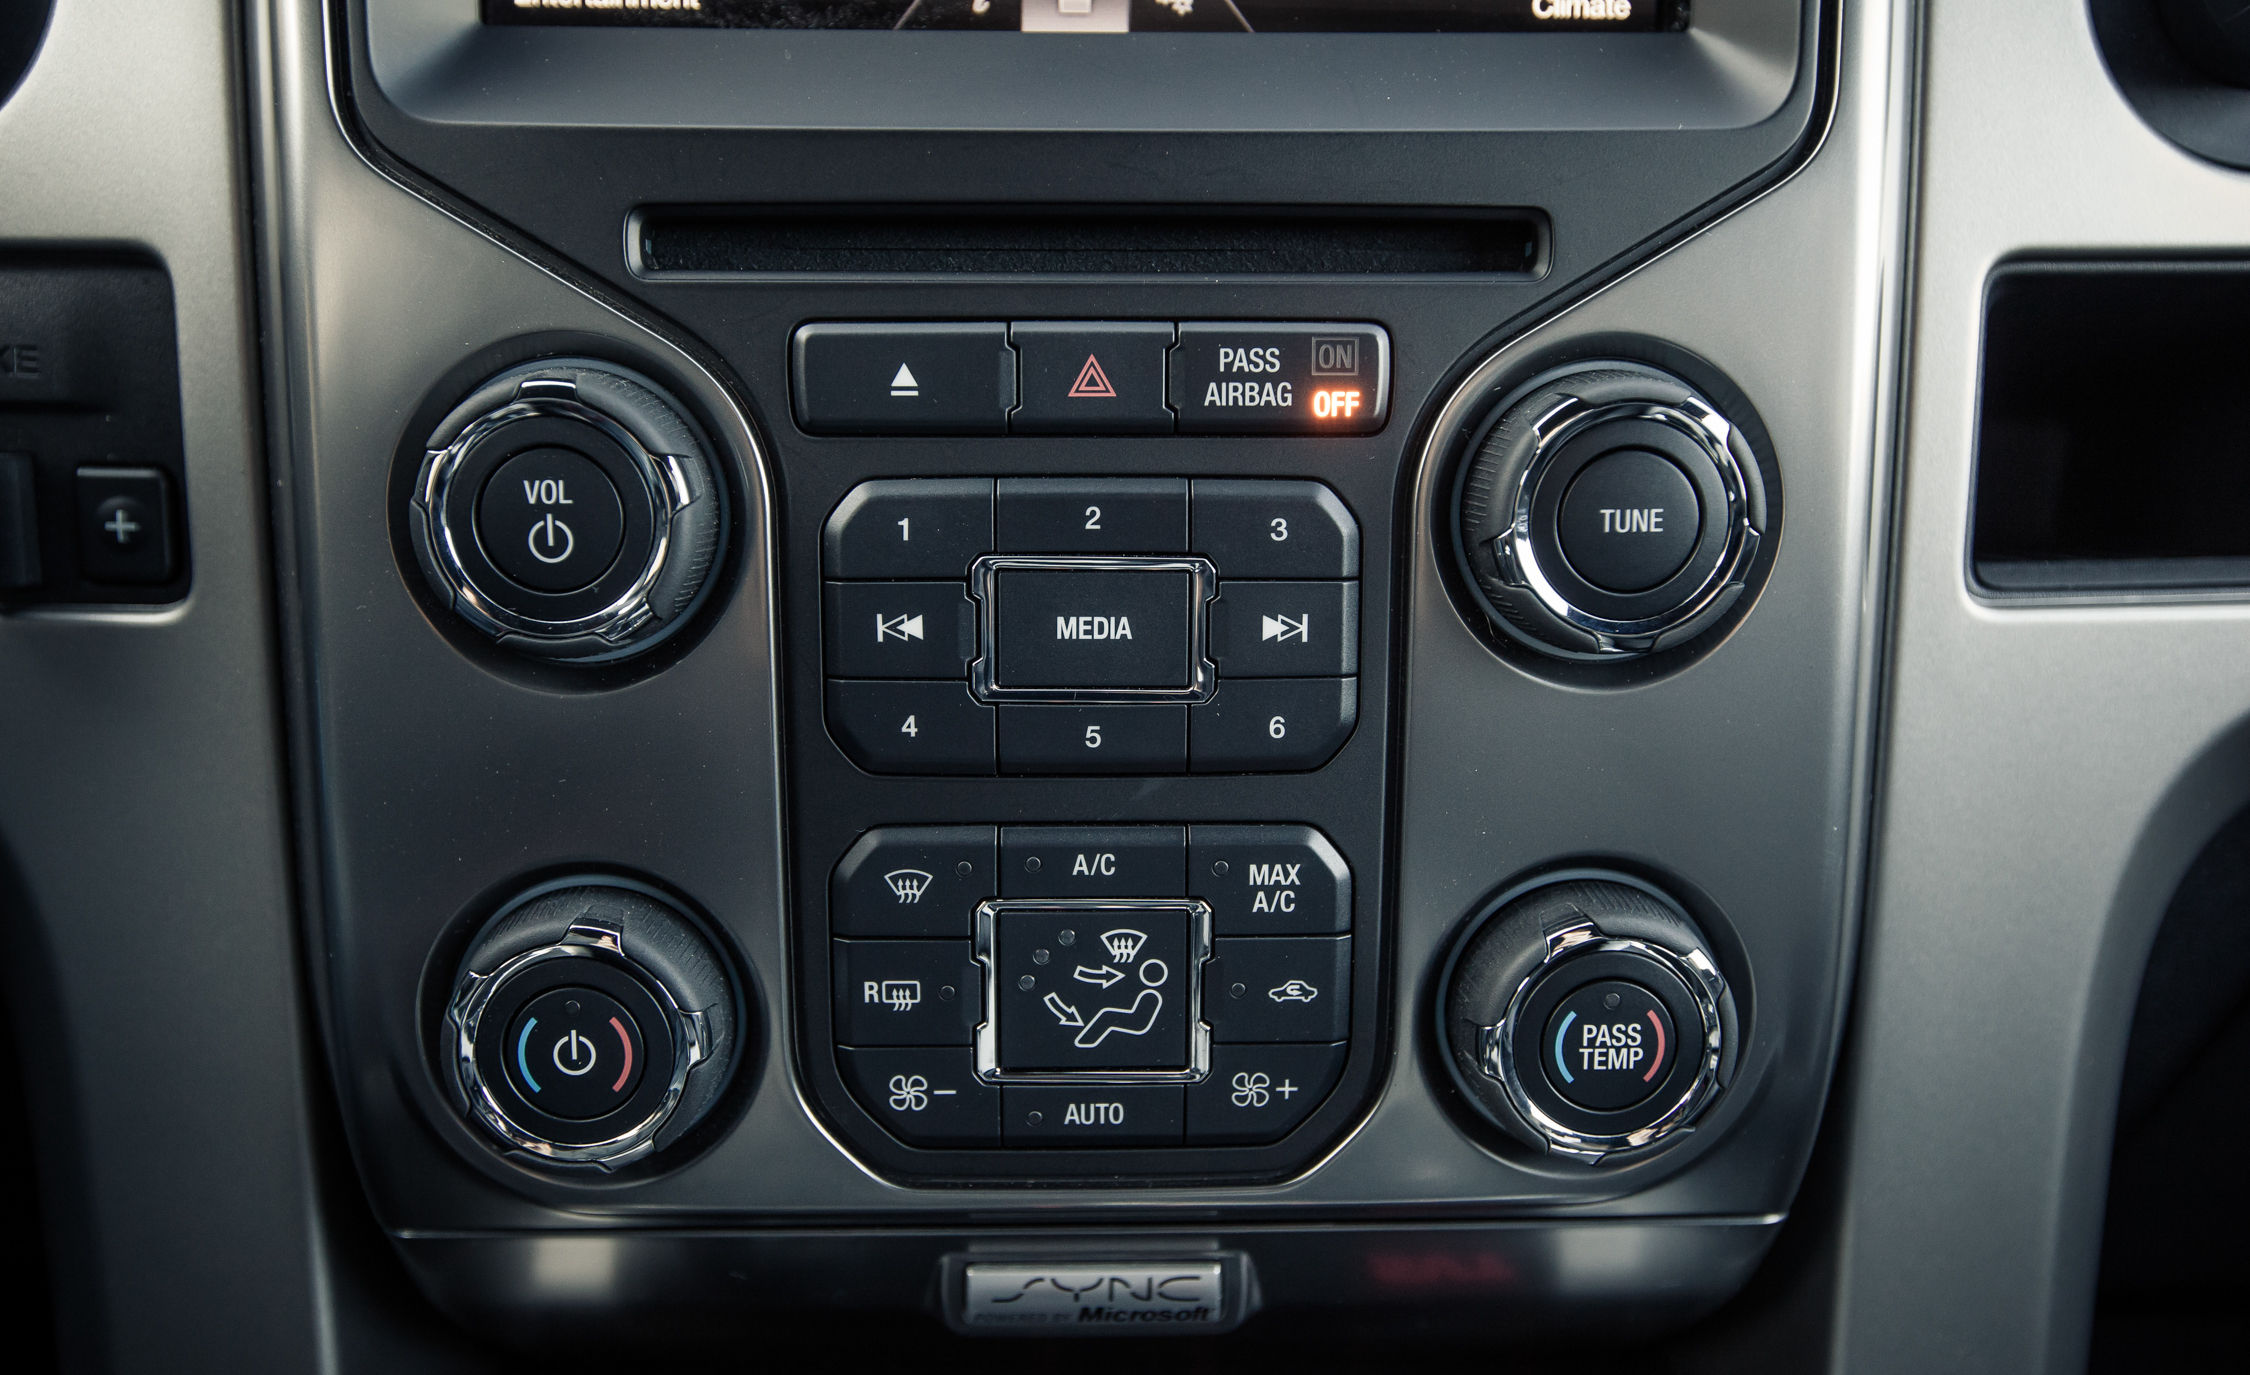 2013 Ford F 150 SVT Raptor SuperCab Interior View Climate Control (Photo 21 of 39)